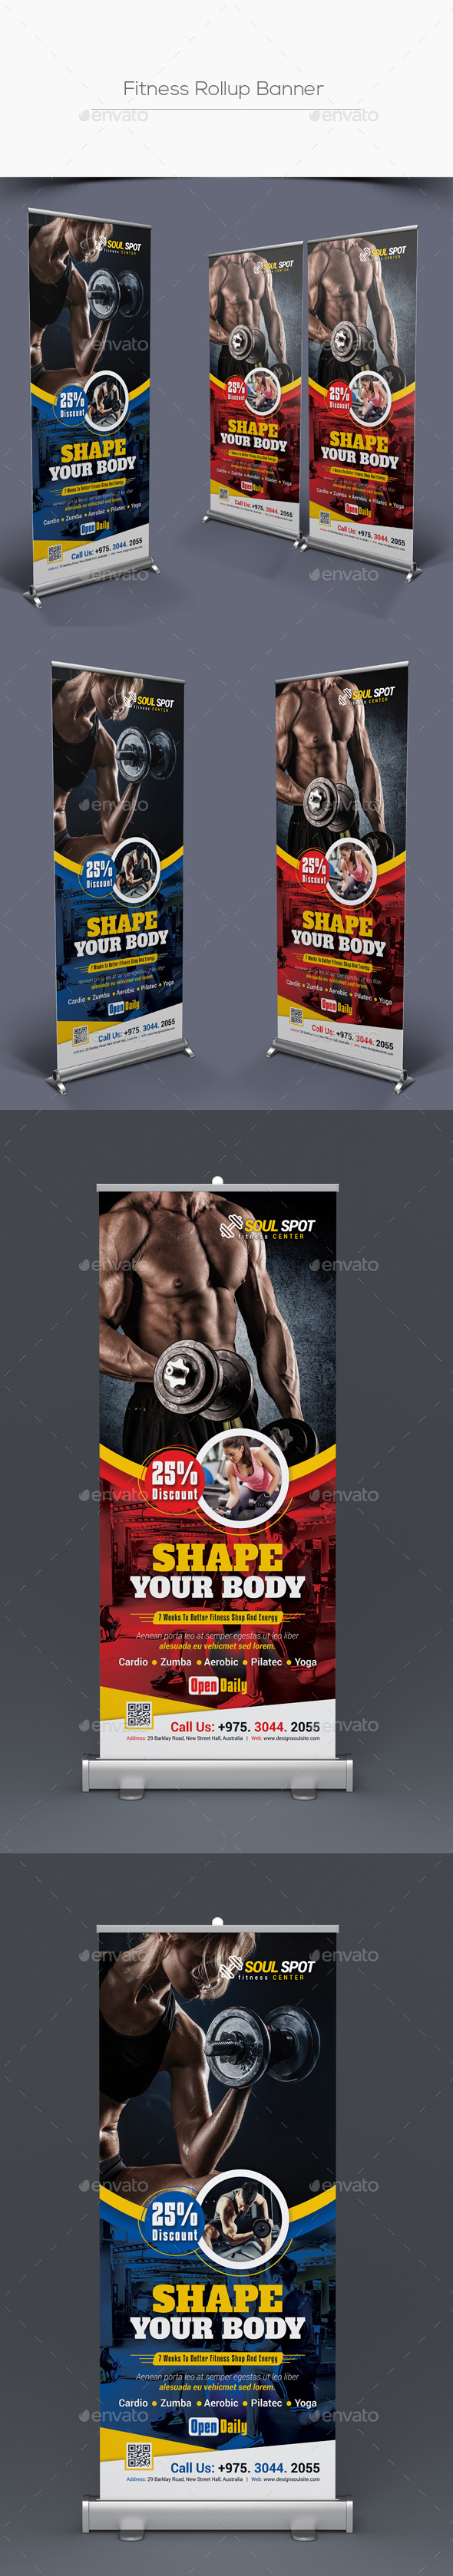 Fitness Rollup Banner - Signage Print Templates